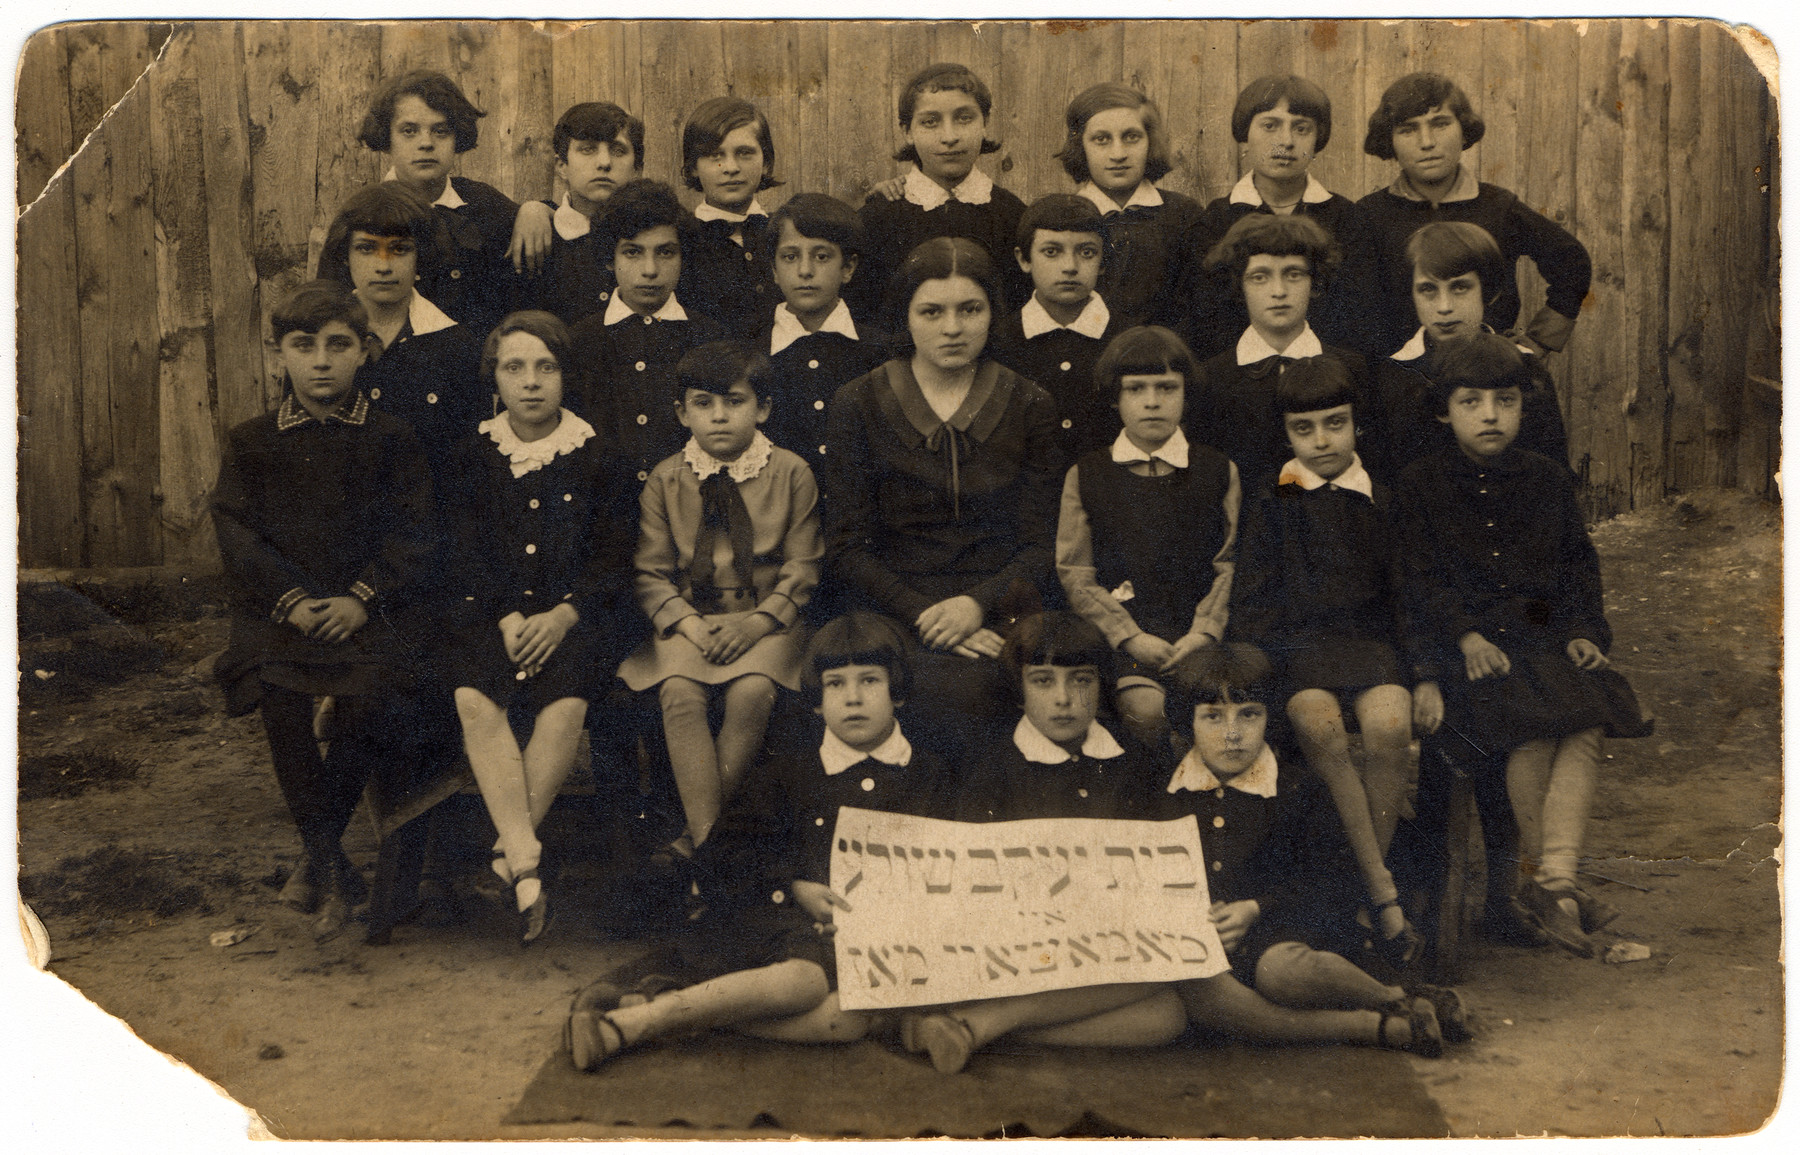 Class portrait of a Beit Yaakov, religious girls school in Tomaszow Mazowiecki.  Roza Grynspan is pictured in the top row, second from the right.